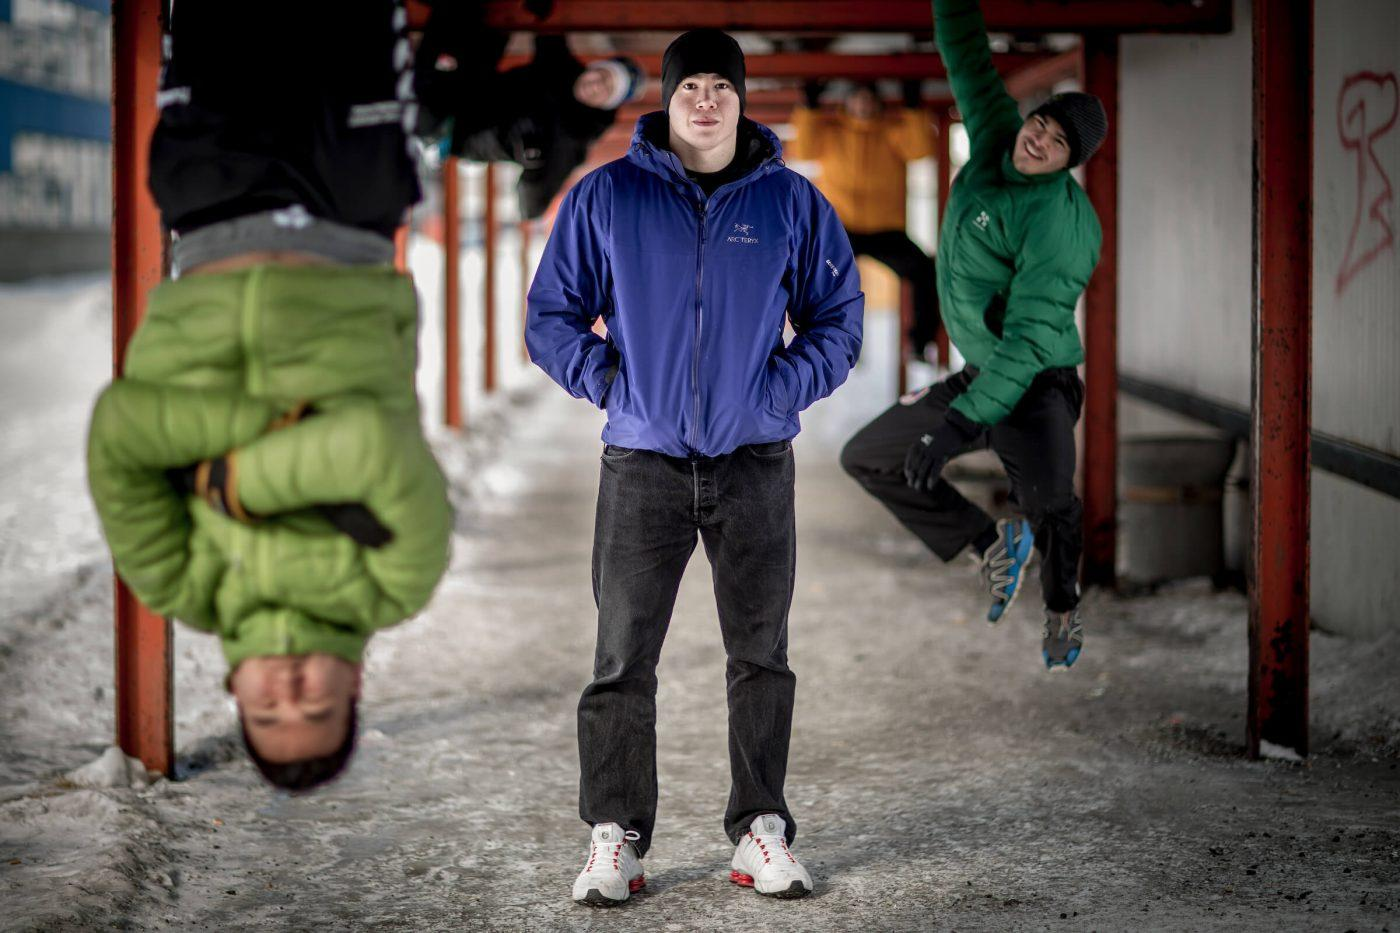 Arctic Winter Games athletes having fun in the urban spaces of Nuuuk in Greenland. By Mads Pihl